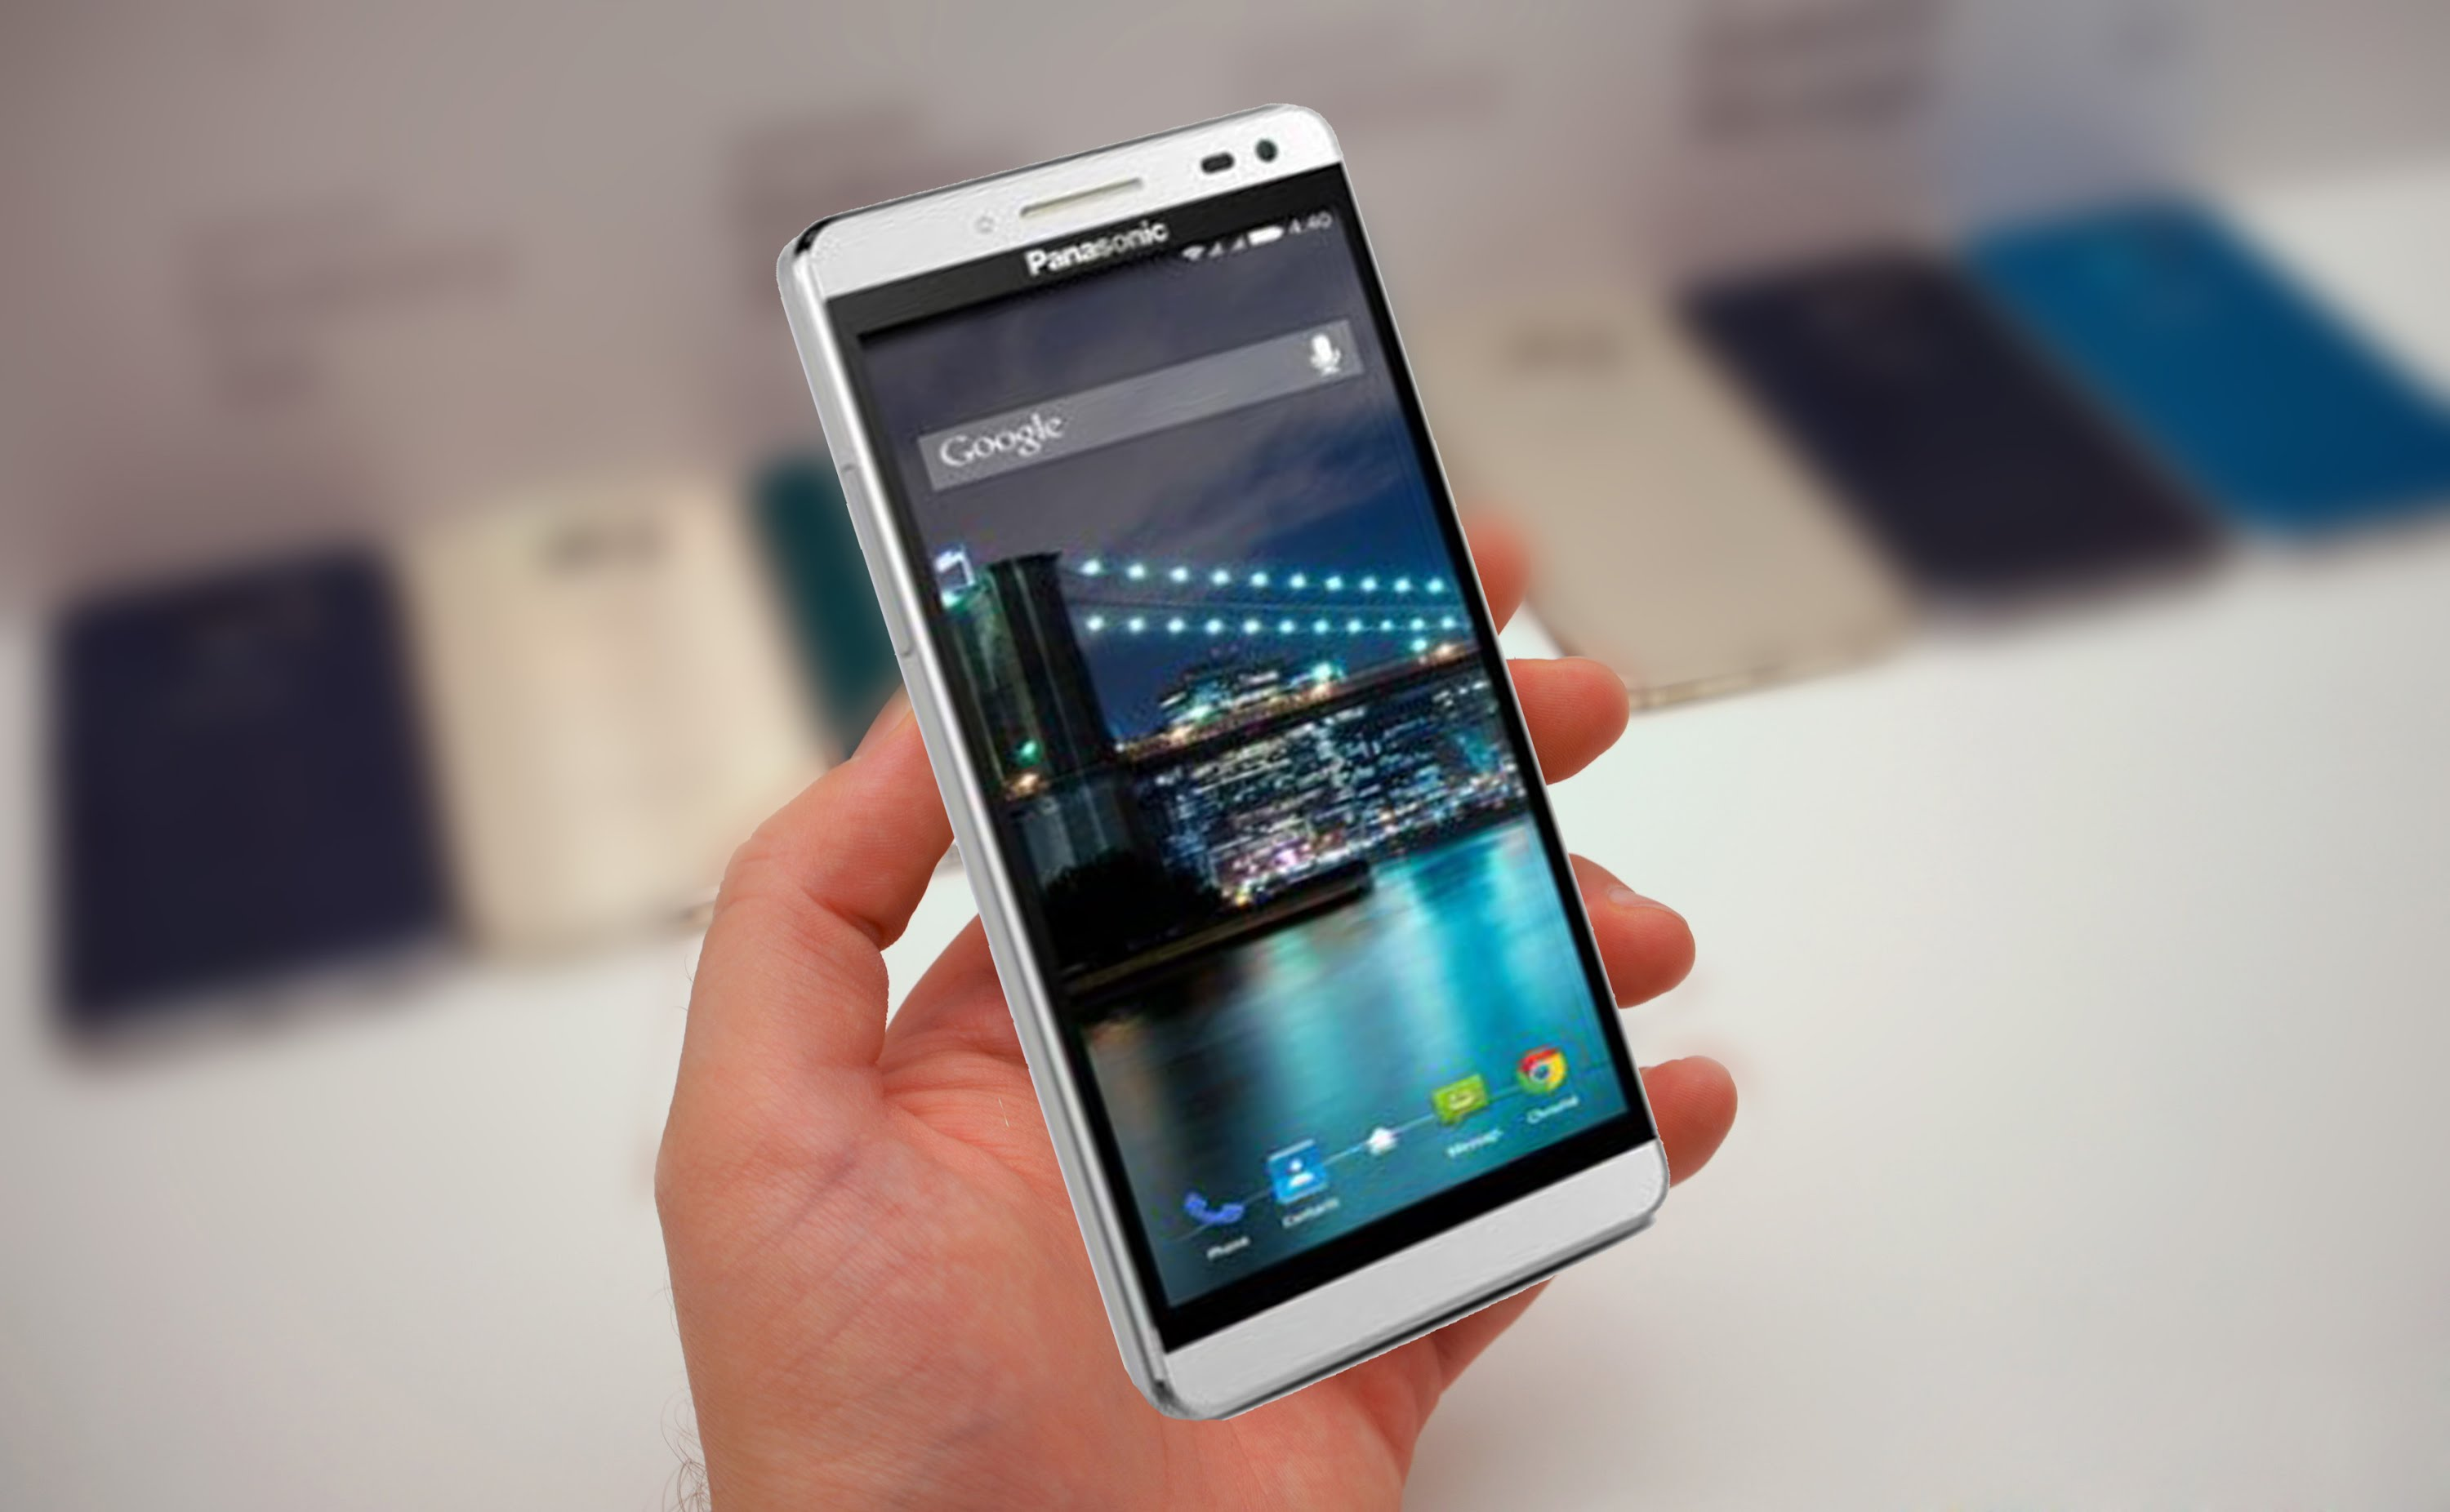 Panasonic P100 launched in India, prices start from Rs 5299: Specifications, features